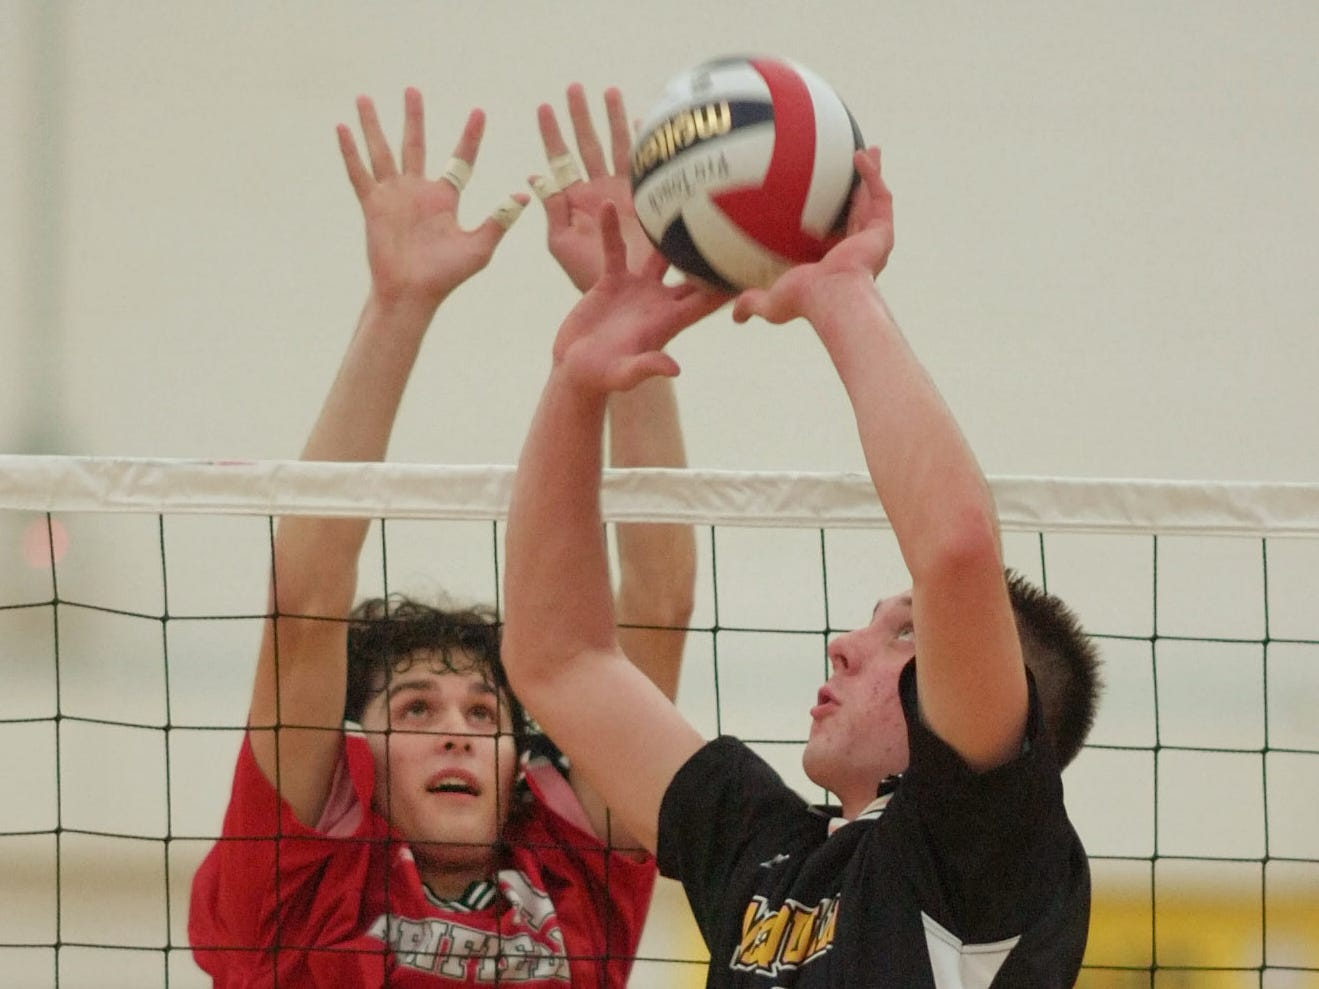 Penfield's Nick Witorski, left, goes up with McQuaid's Kyle Prem (12) in the 2006 volleyball final.